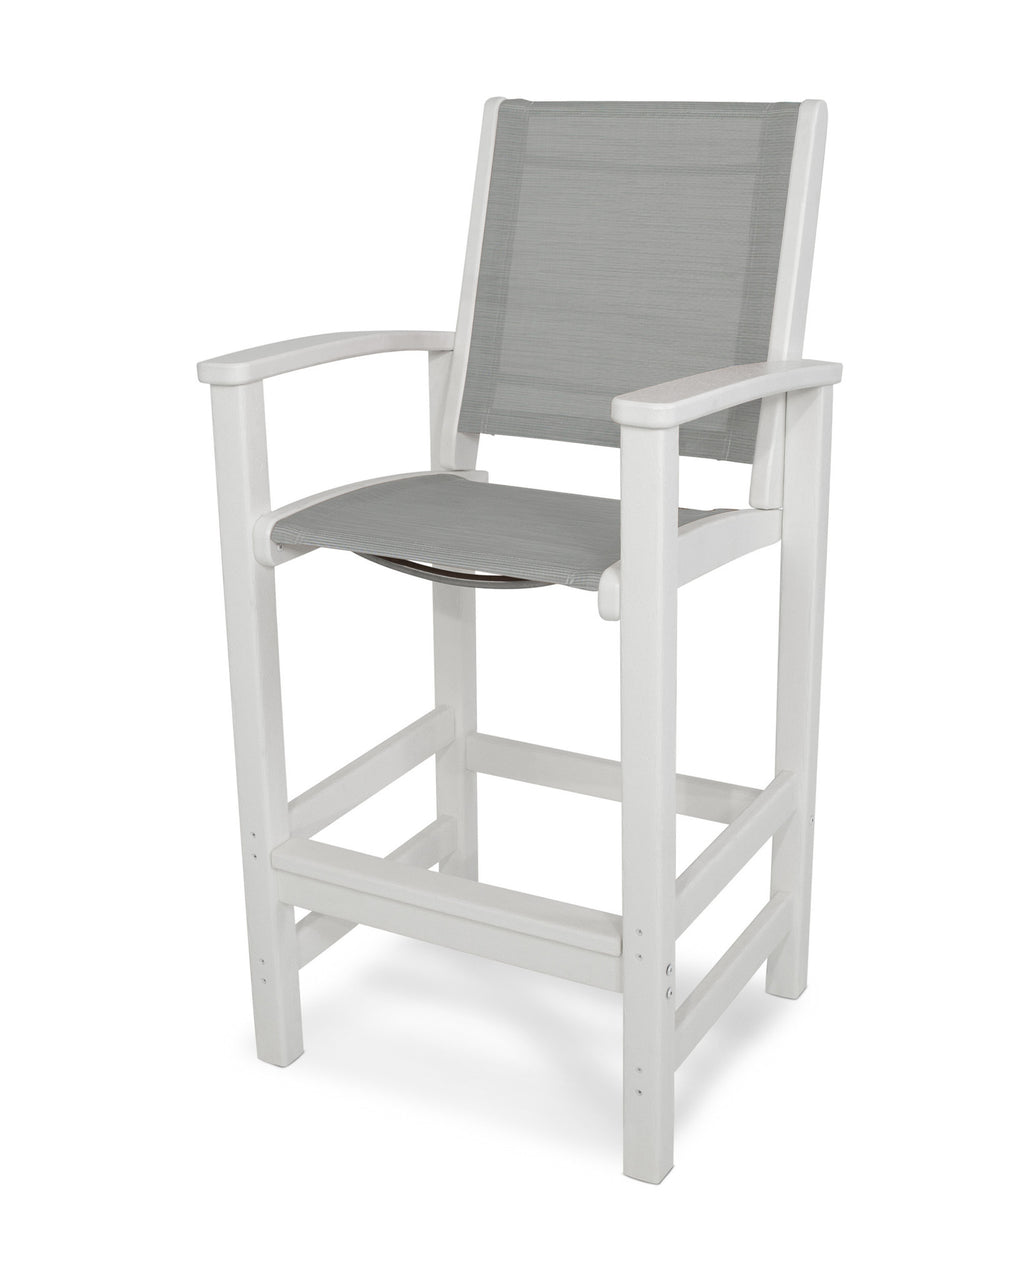 9012-WH909 Coastal Bar Chair in White with a Metallic Sling